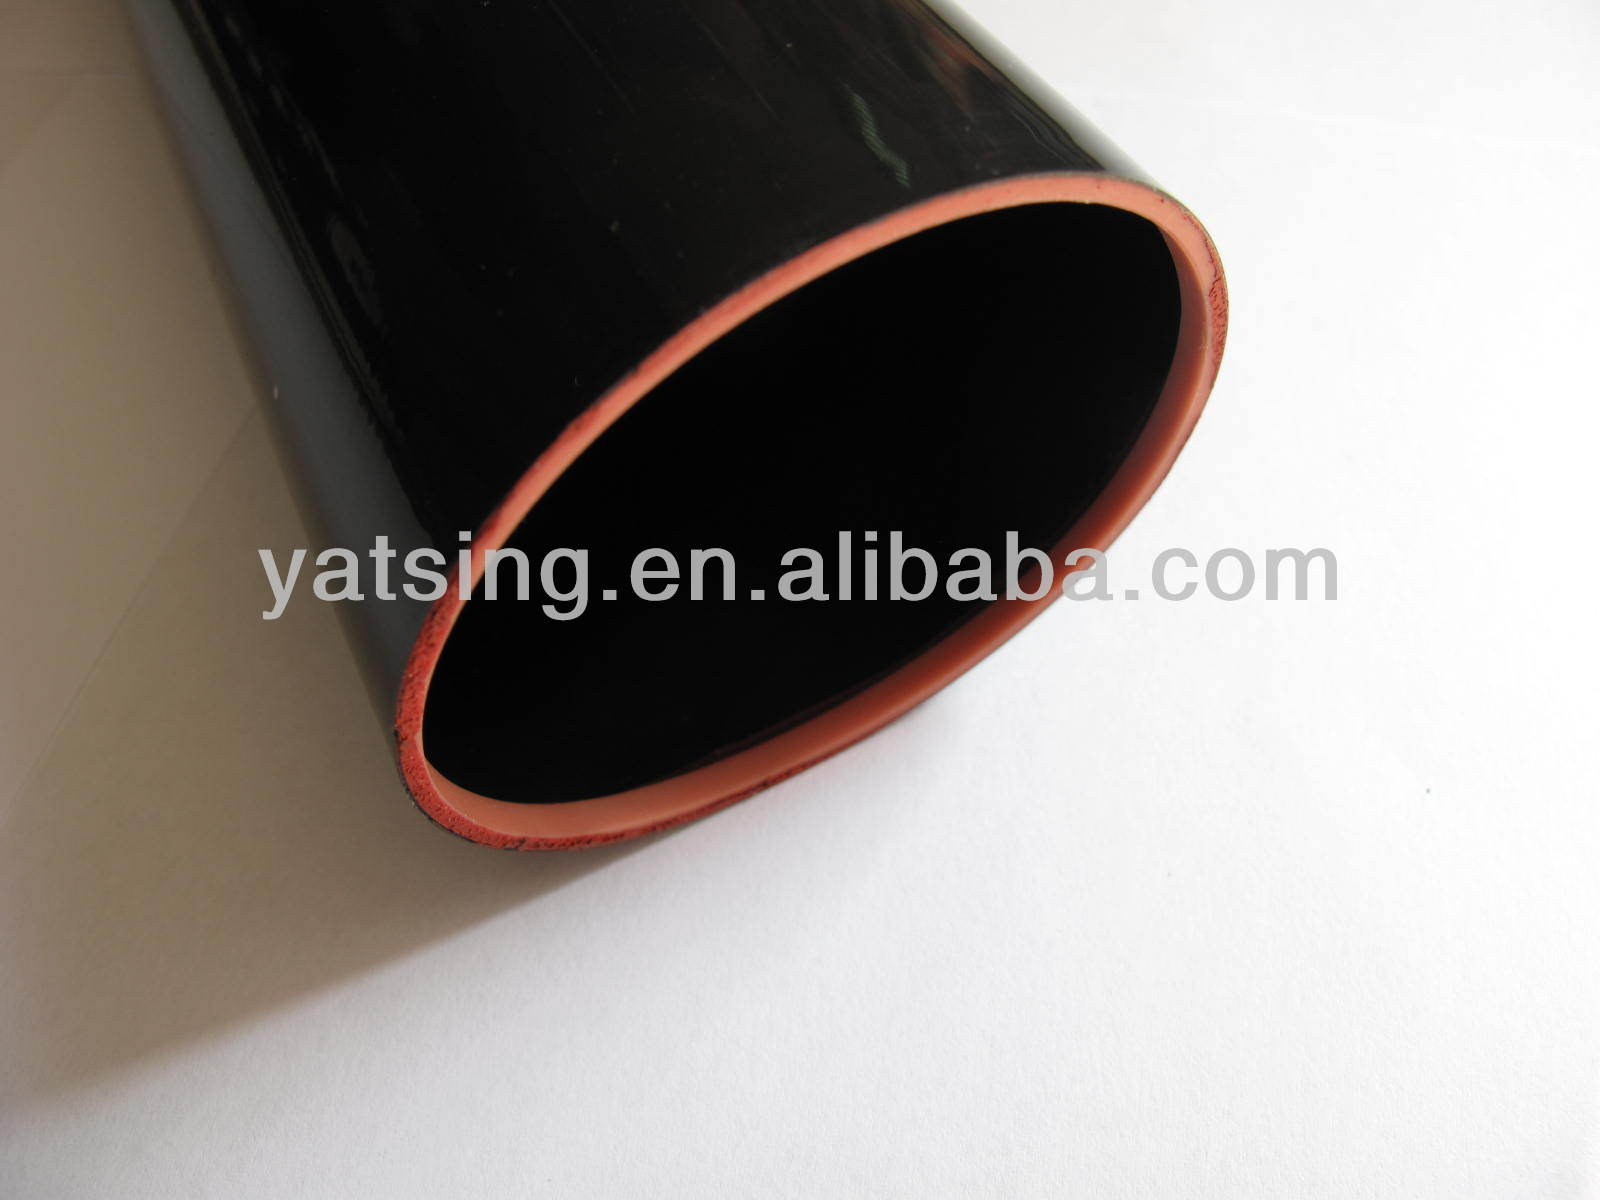 compatible fuser film sleeve for use in MPC4500 with good quality